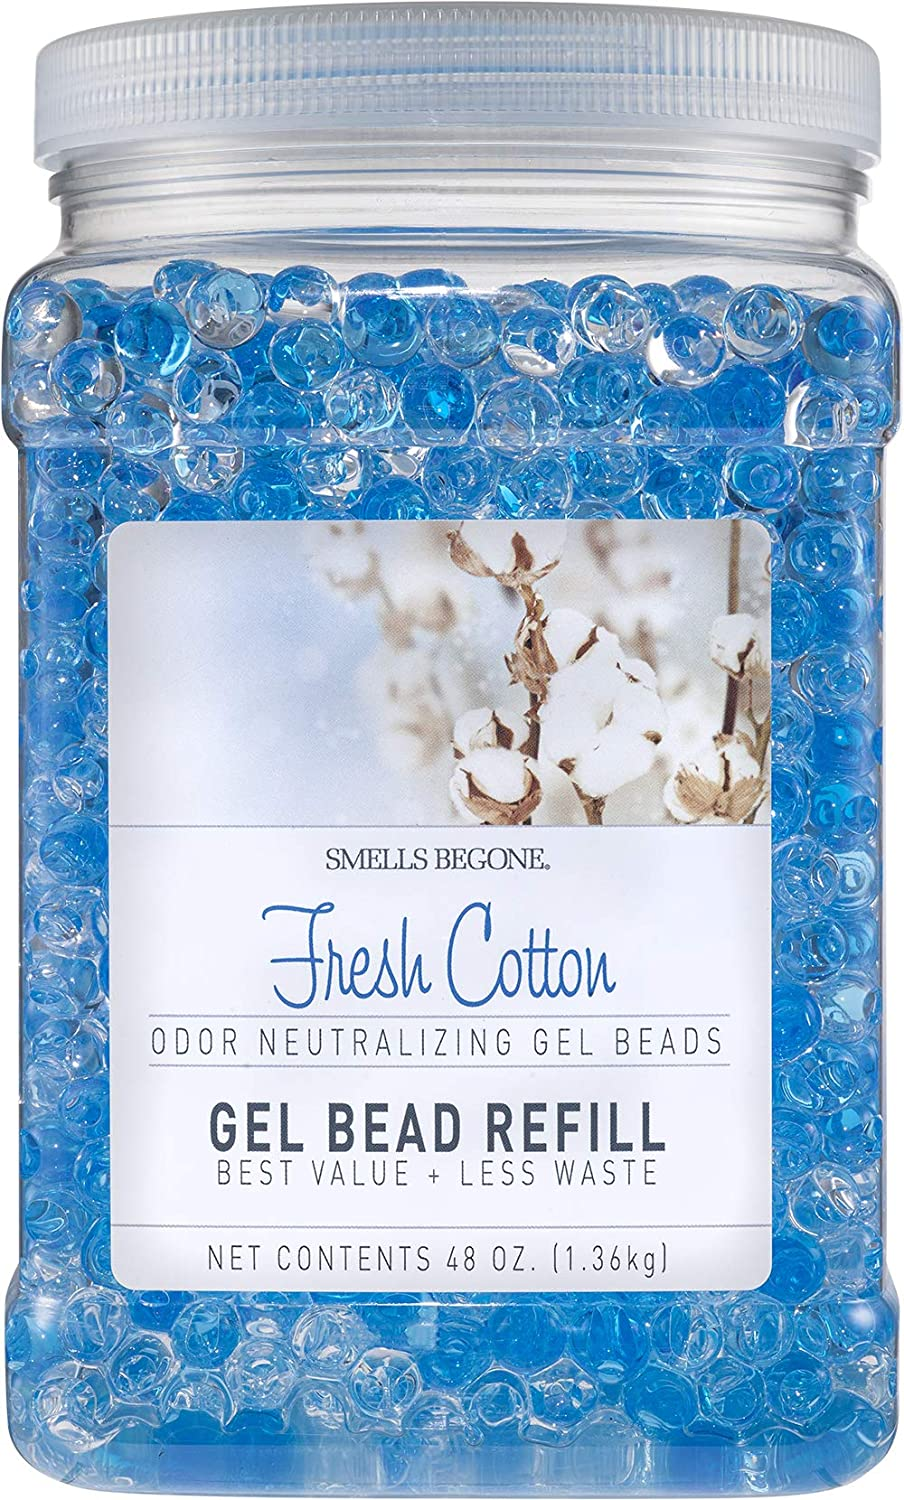 SMELLS BEGONE Odor Eliminator Gel Bead Refill - Eliminates Odors from Bathrooms, Cars, Boats, RVs & Pet Areas - Formulated with Essential Oils - Fresh Cotton Scent - 48 Ounce